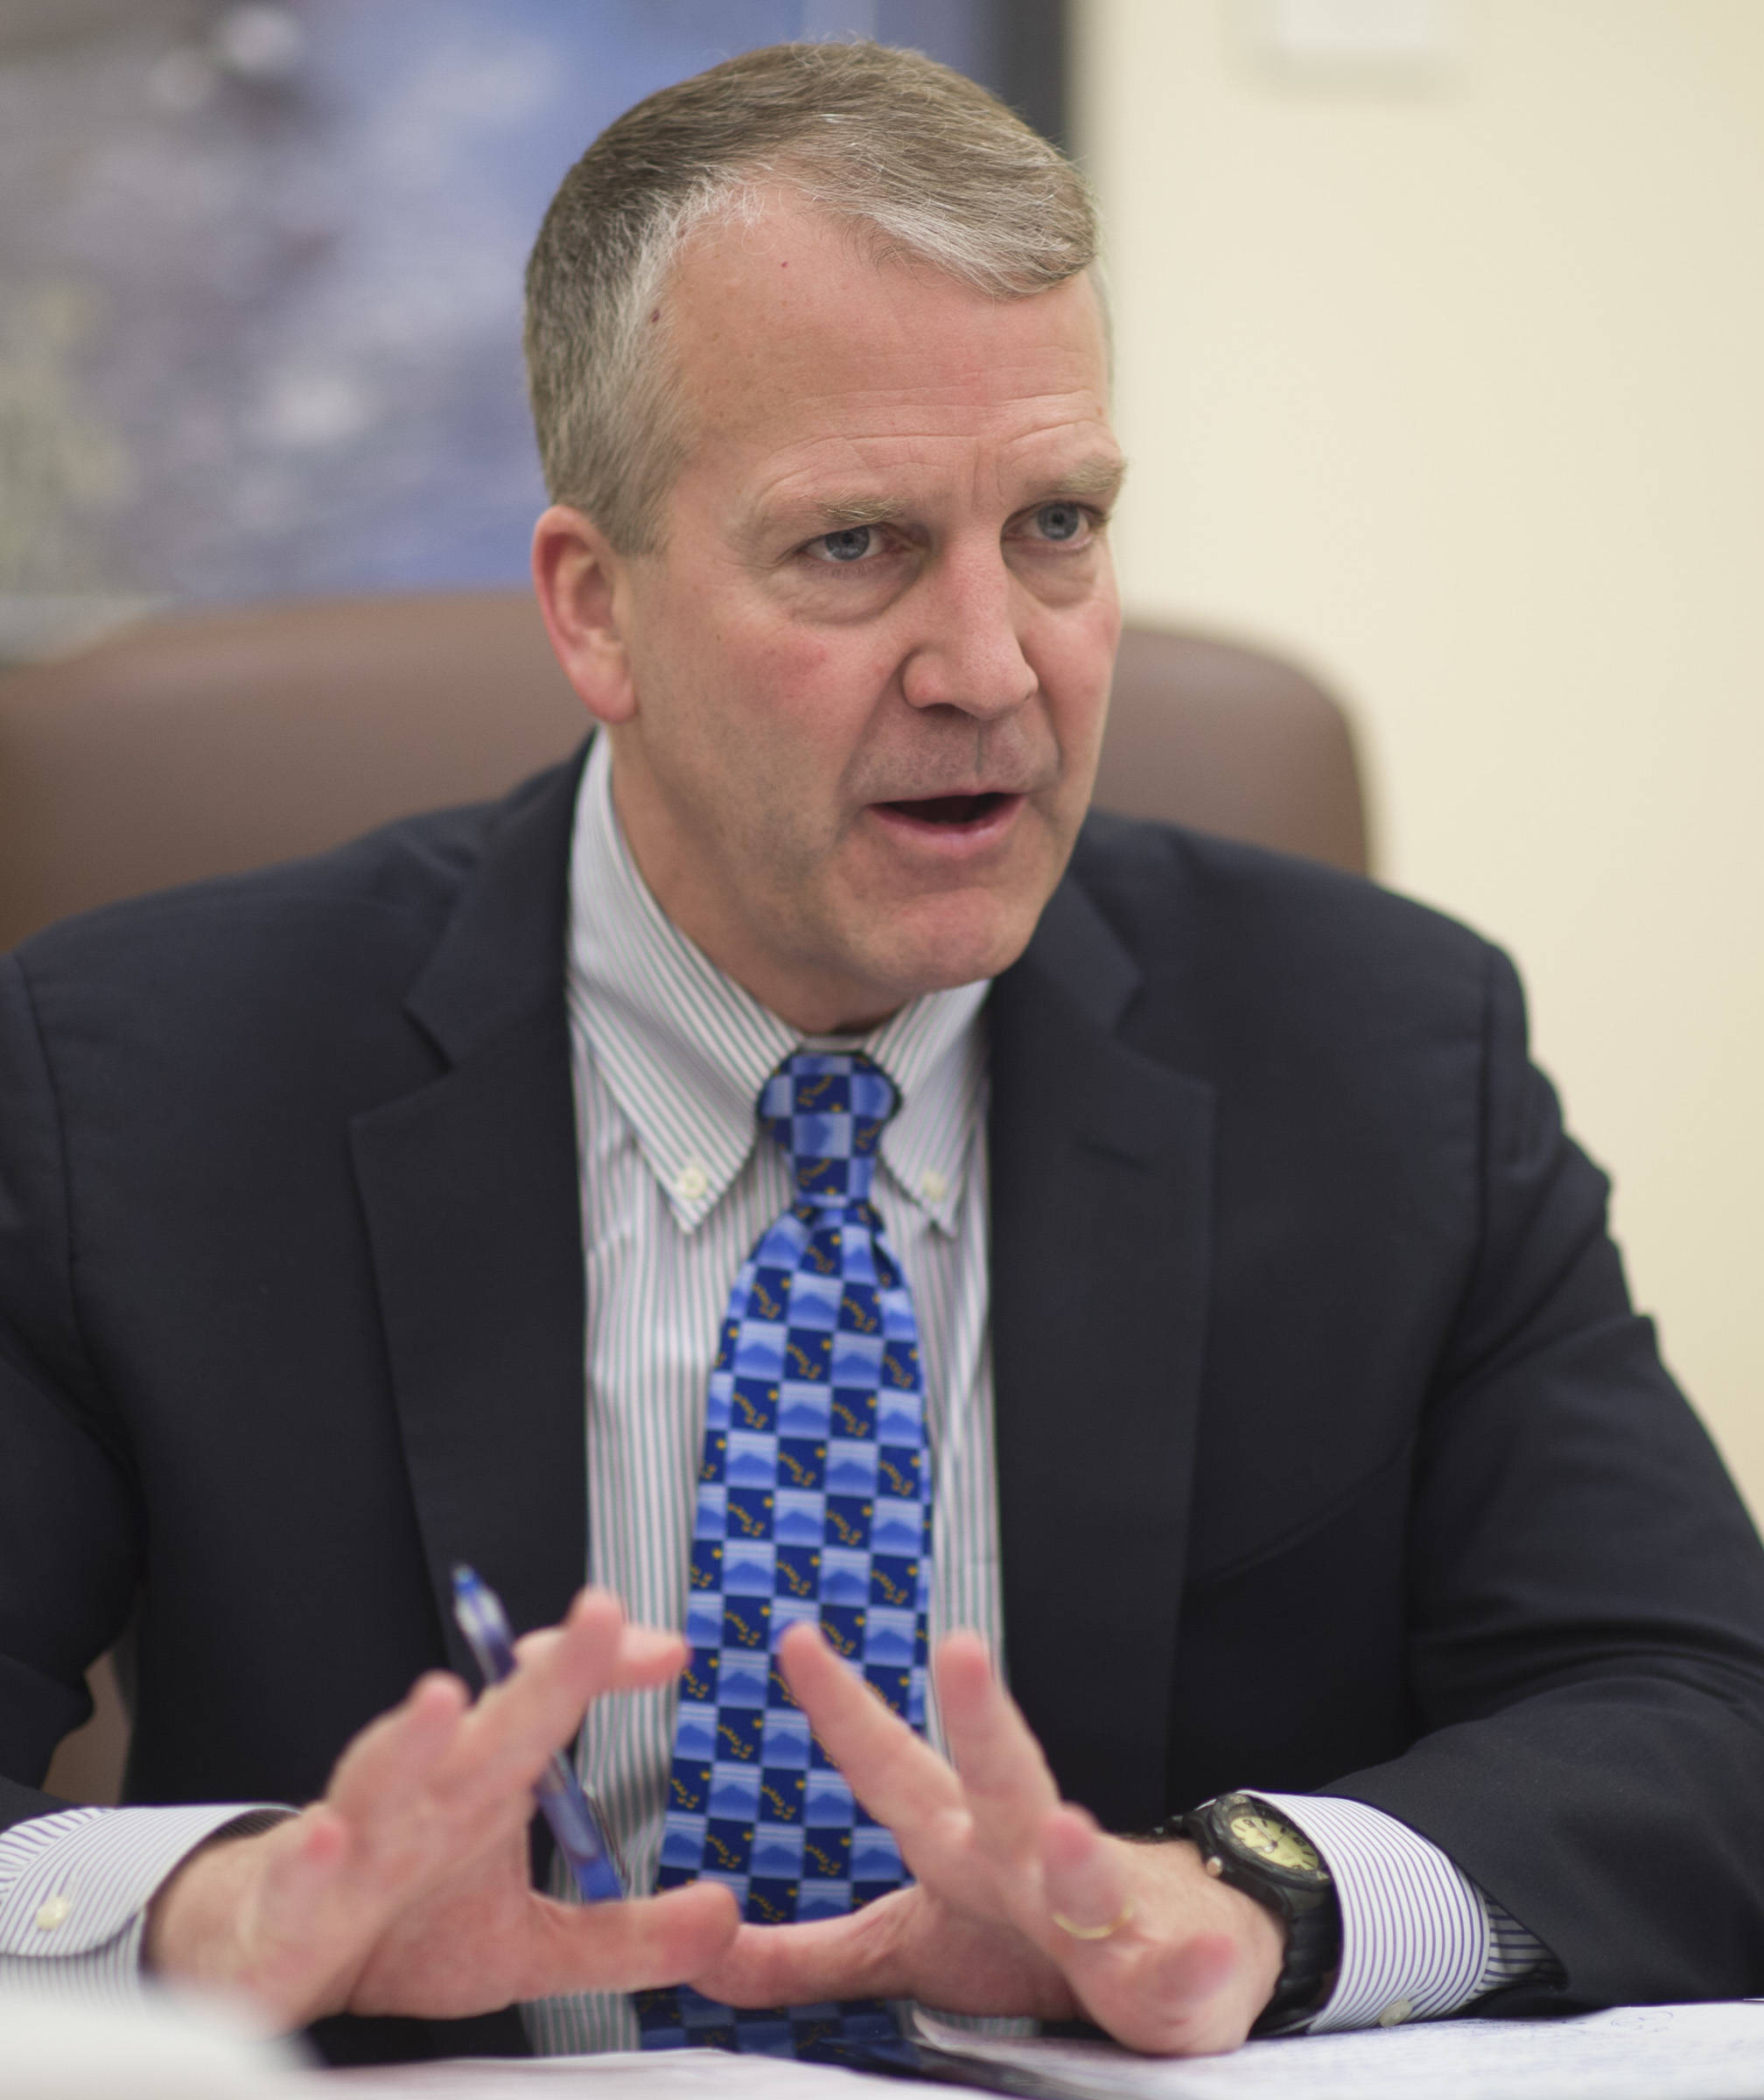 U.S. Sen. Dan Sullivan, R-Alaska, speaks during an interview with the Juneau Empire at the Capitol on Thursday, Feb. 21, 2019. (Michael Penn | Juneau Empire)